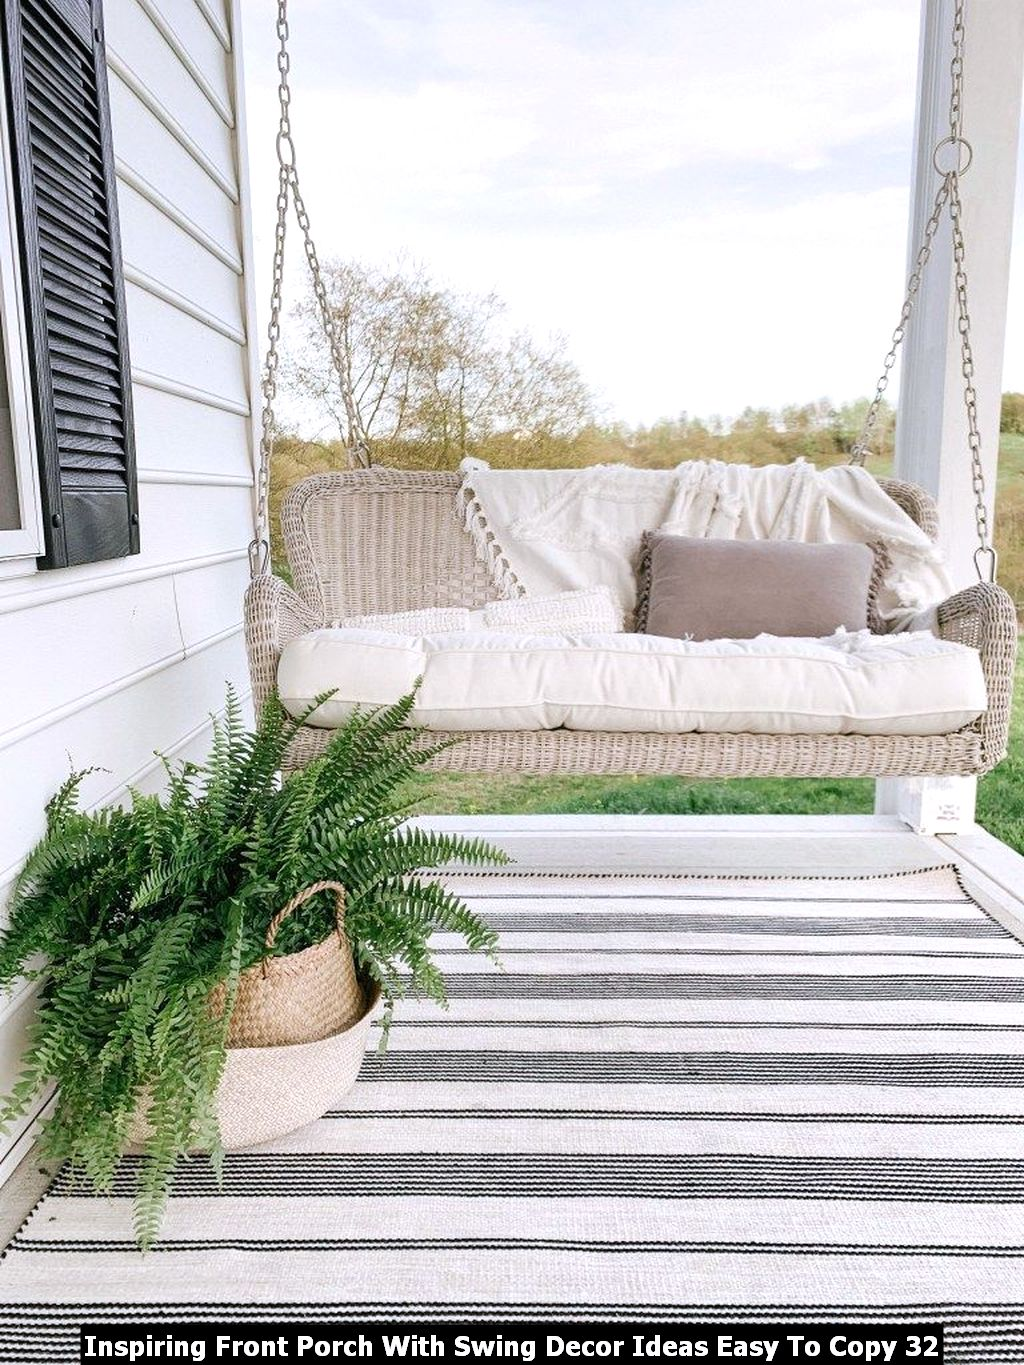 Inspiring Front Porch With Swing Decor Ideas Easy To Copy 32